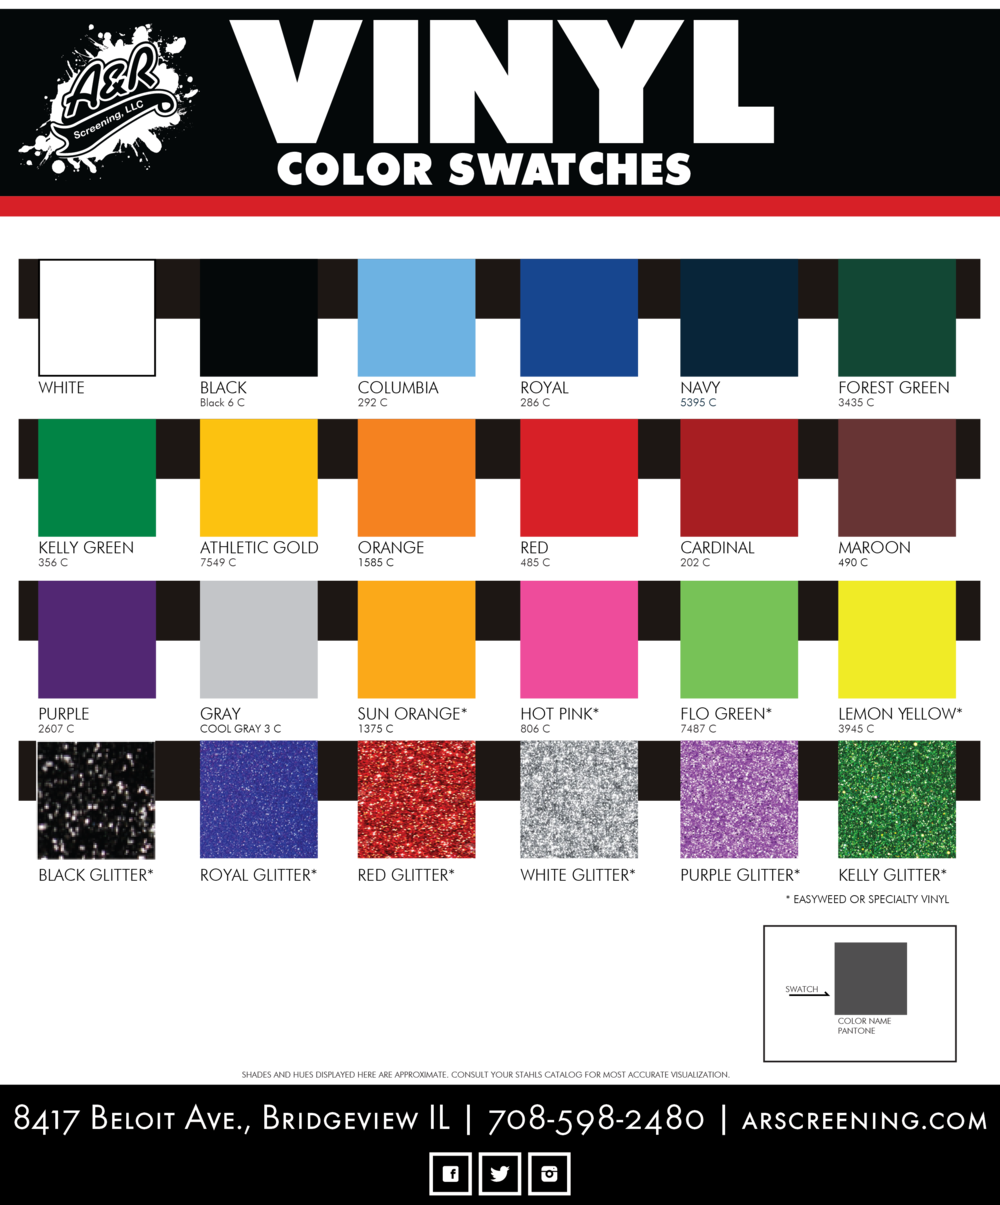 A&R Screening Stahls vinyl stock color swatches